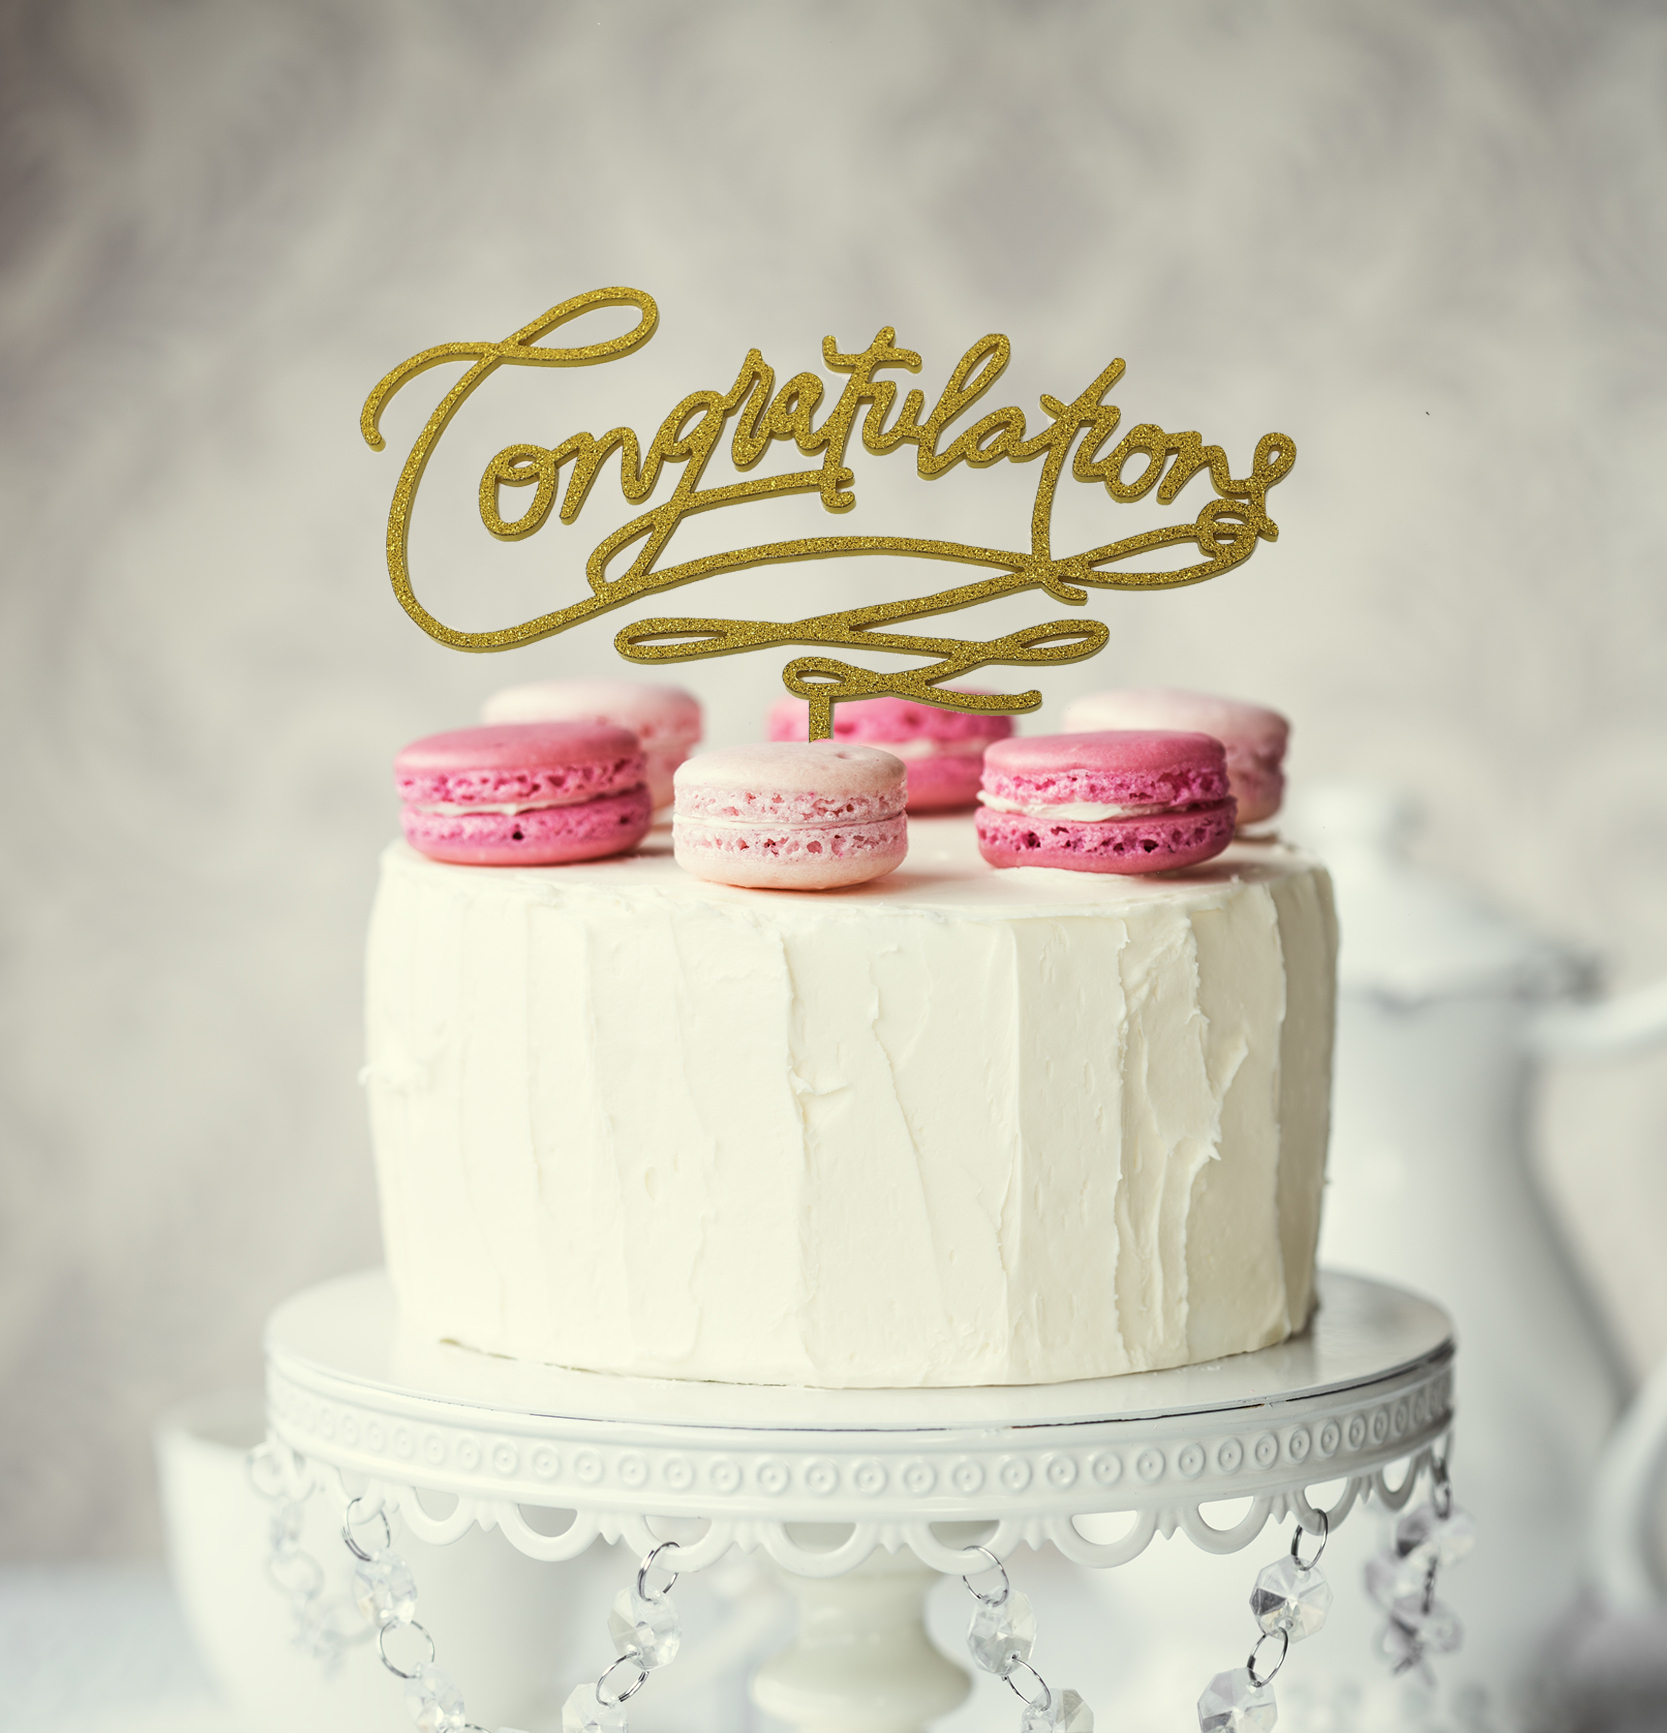 CONGRATULATIONS Cake Topper (Gold)